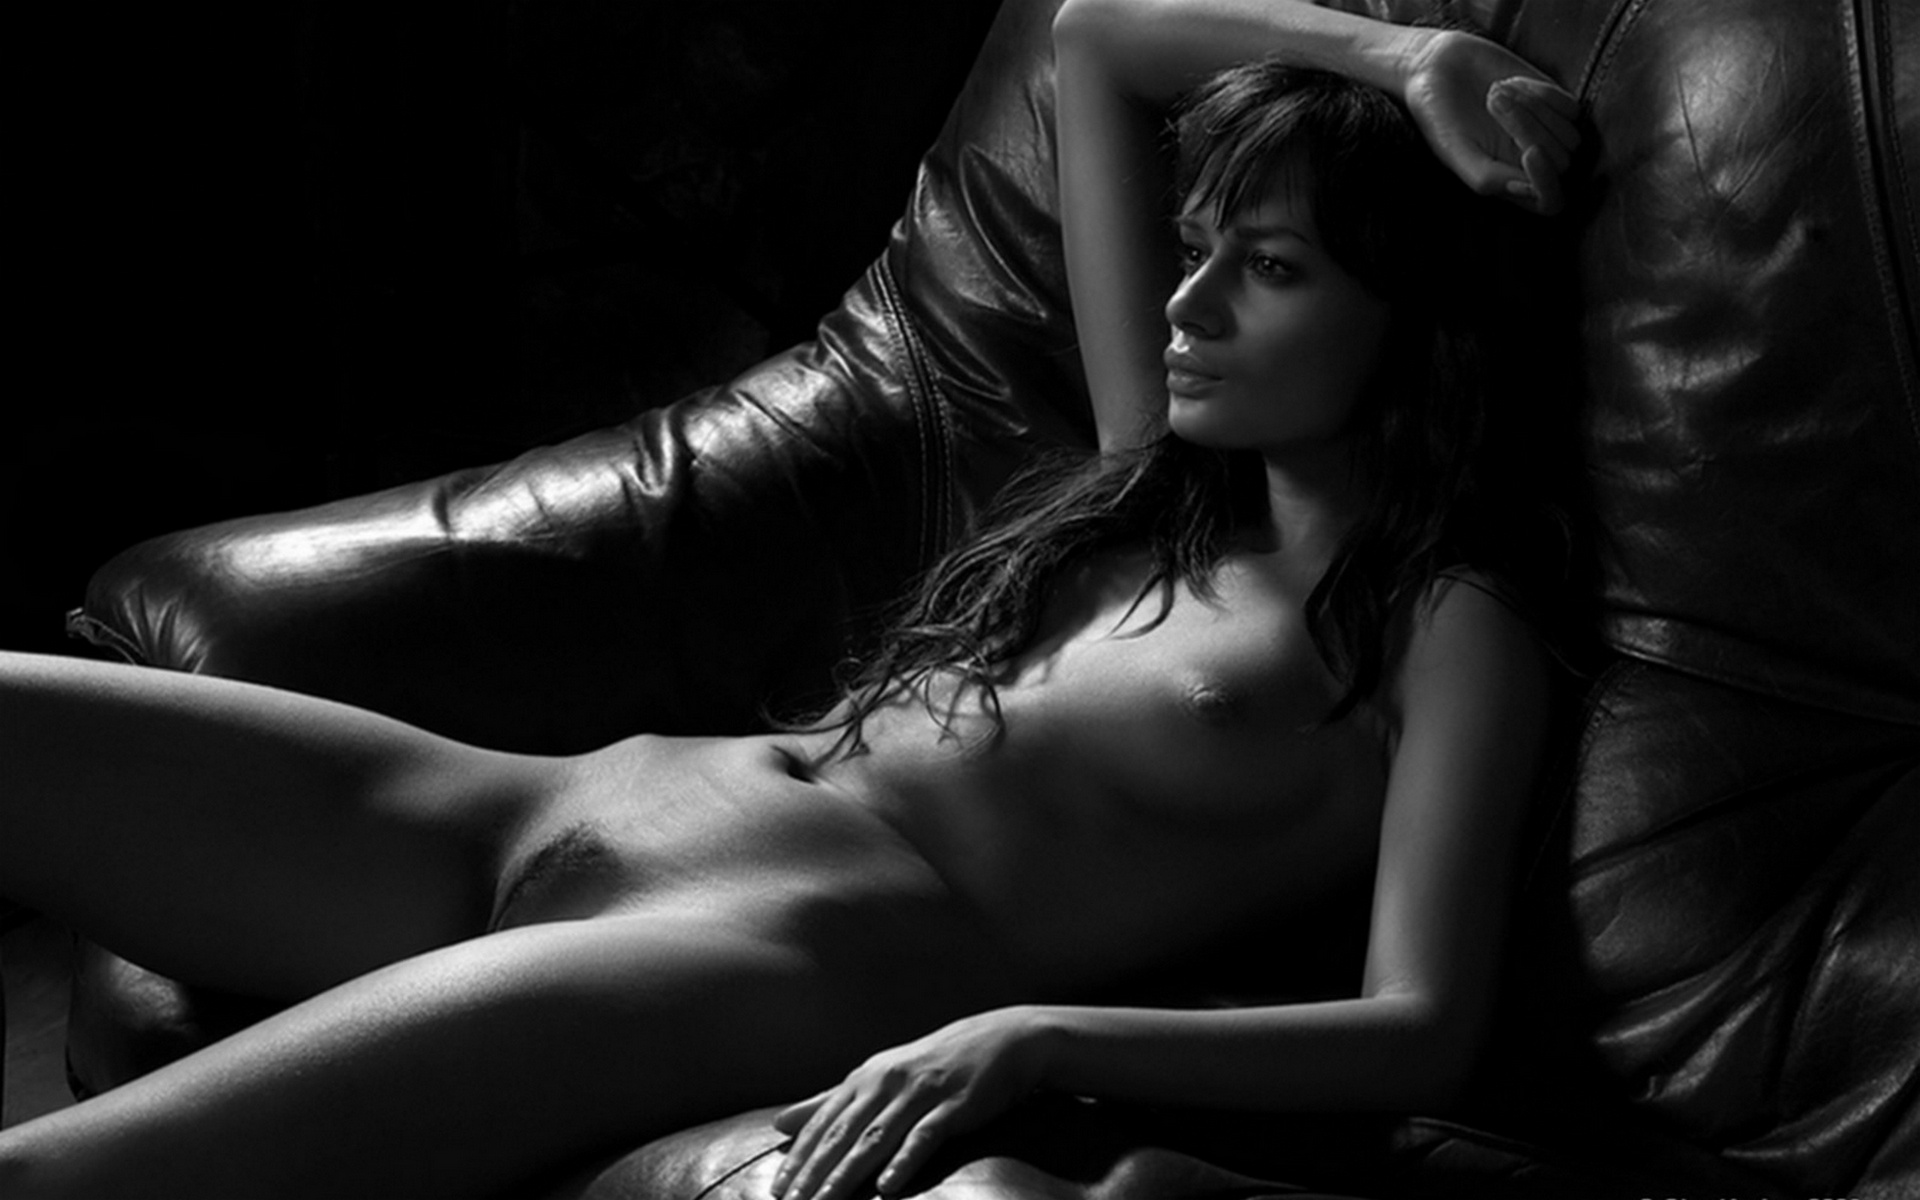 Vintage nude photo print sexy black and white photography